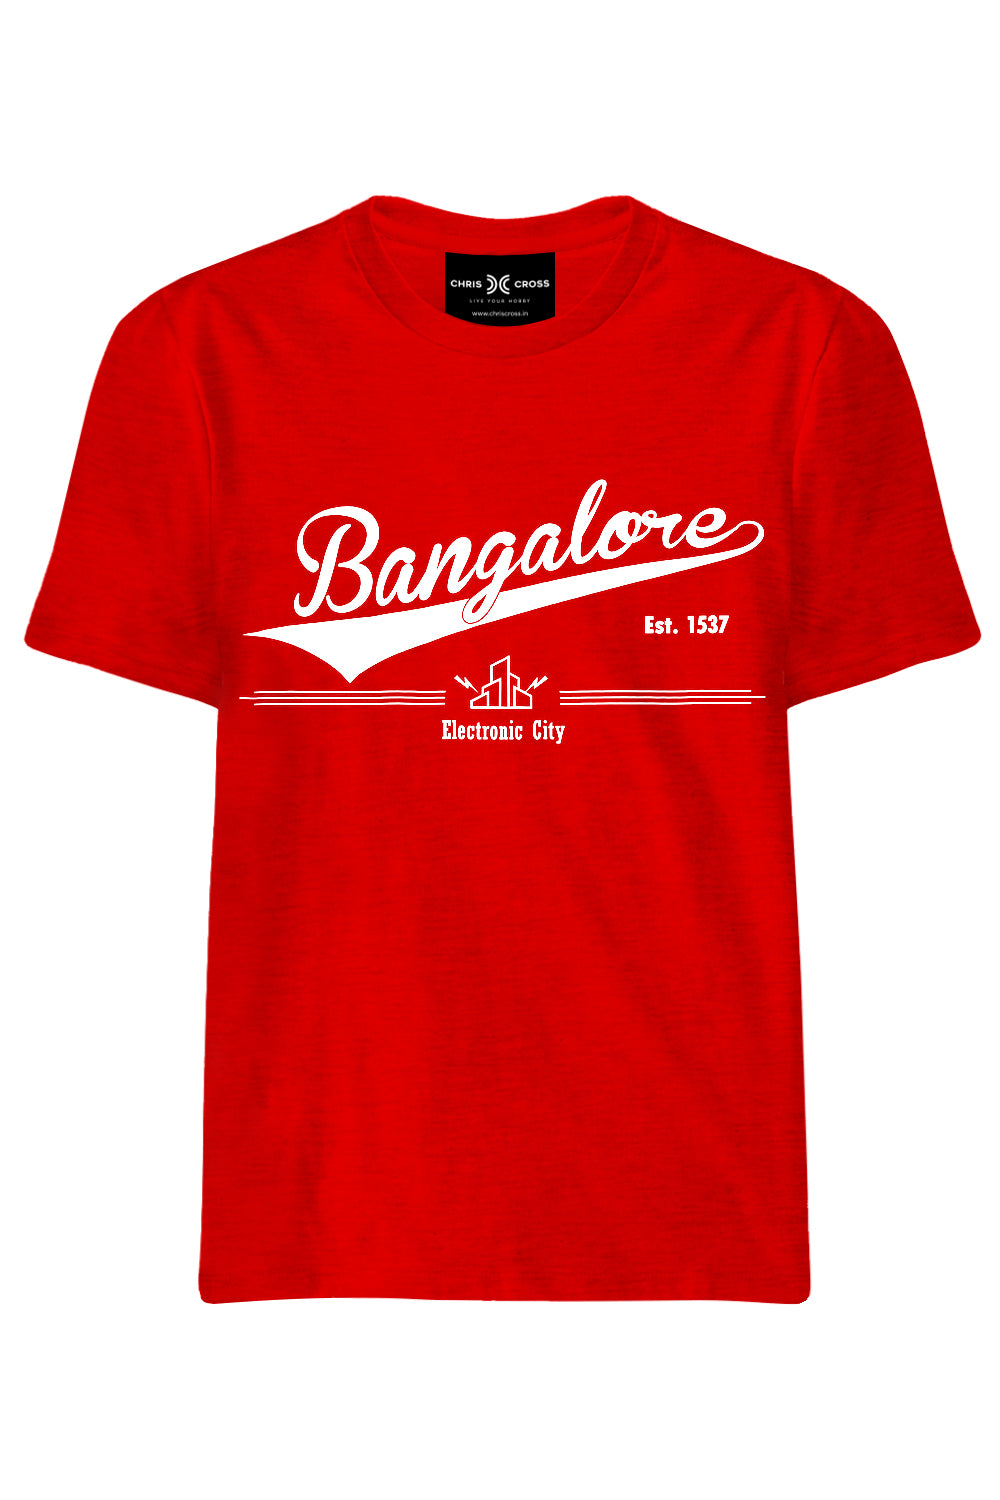 Bangalore Souvenir T-Shirt - ChrisCross.in